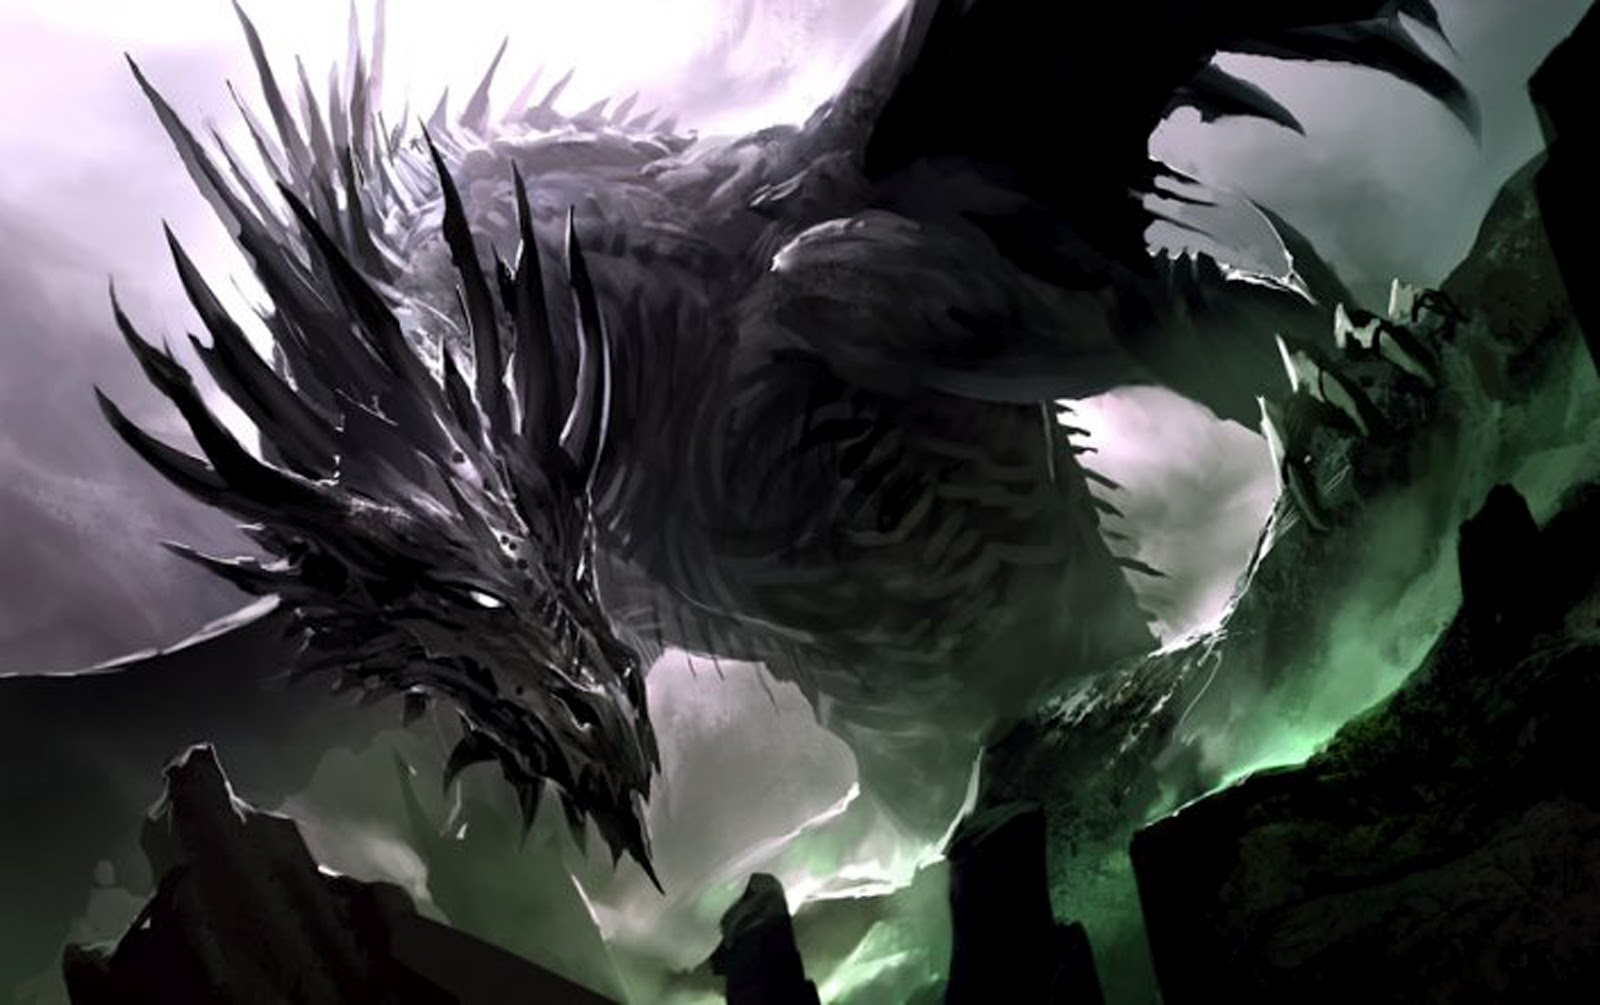 Black fire breathing dragon knight battle castle age heart game concept art 1 2 ii by kekai